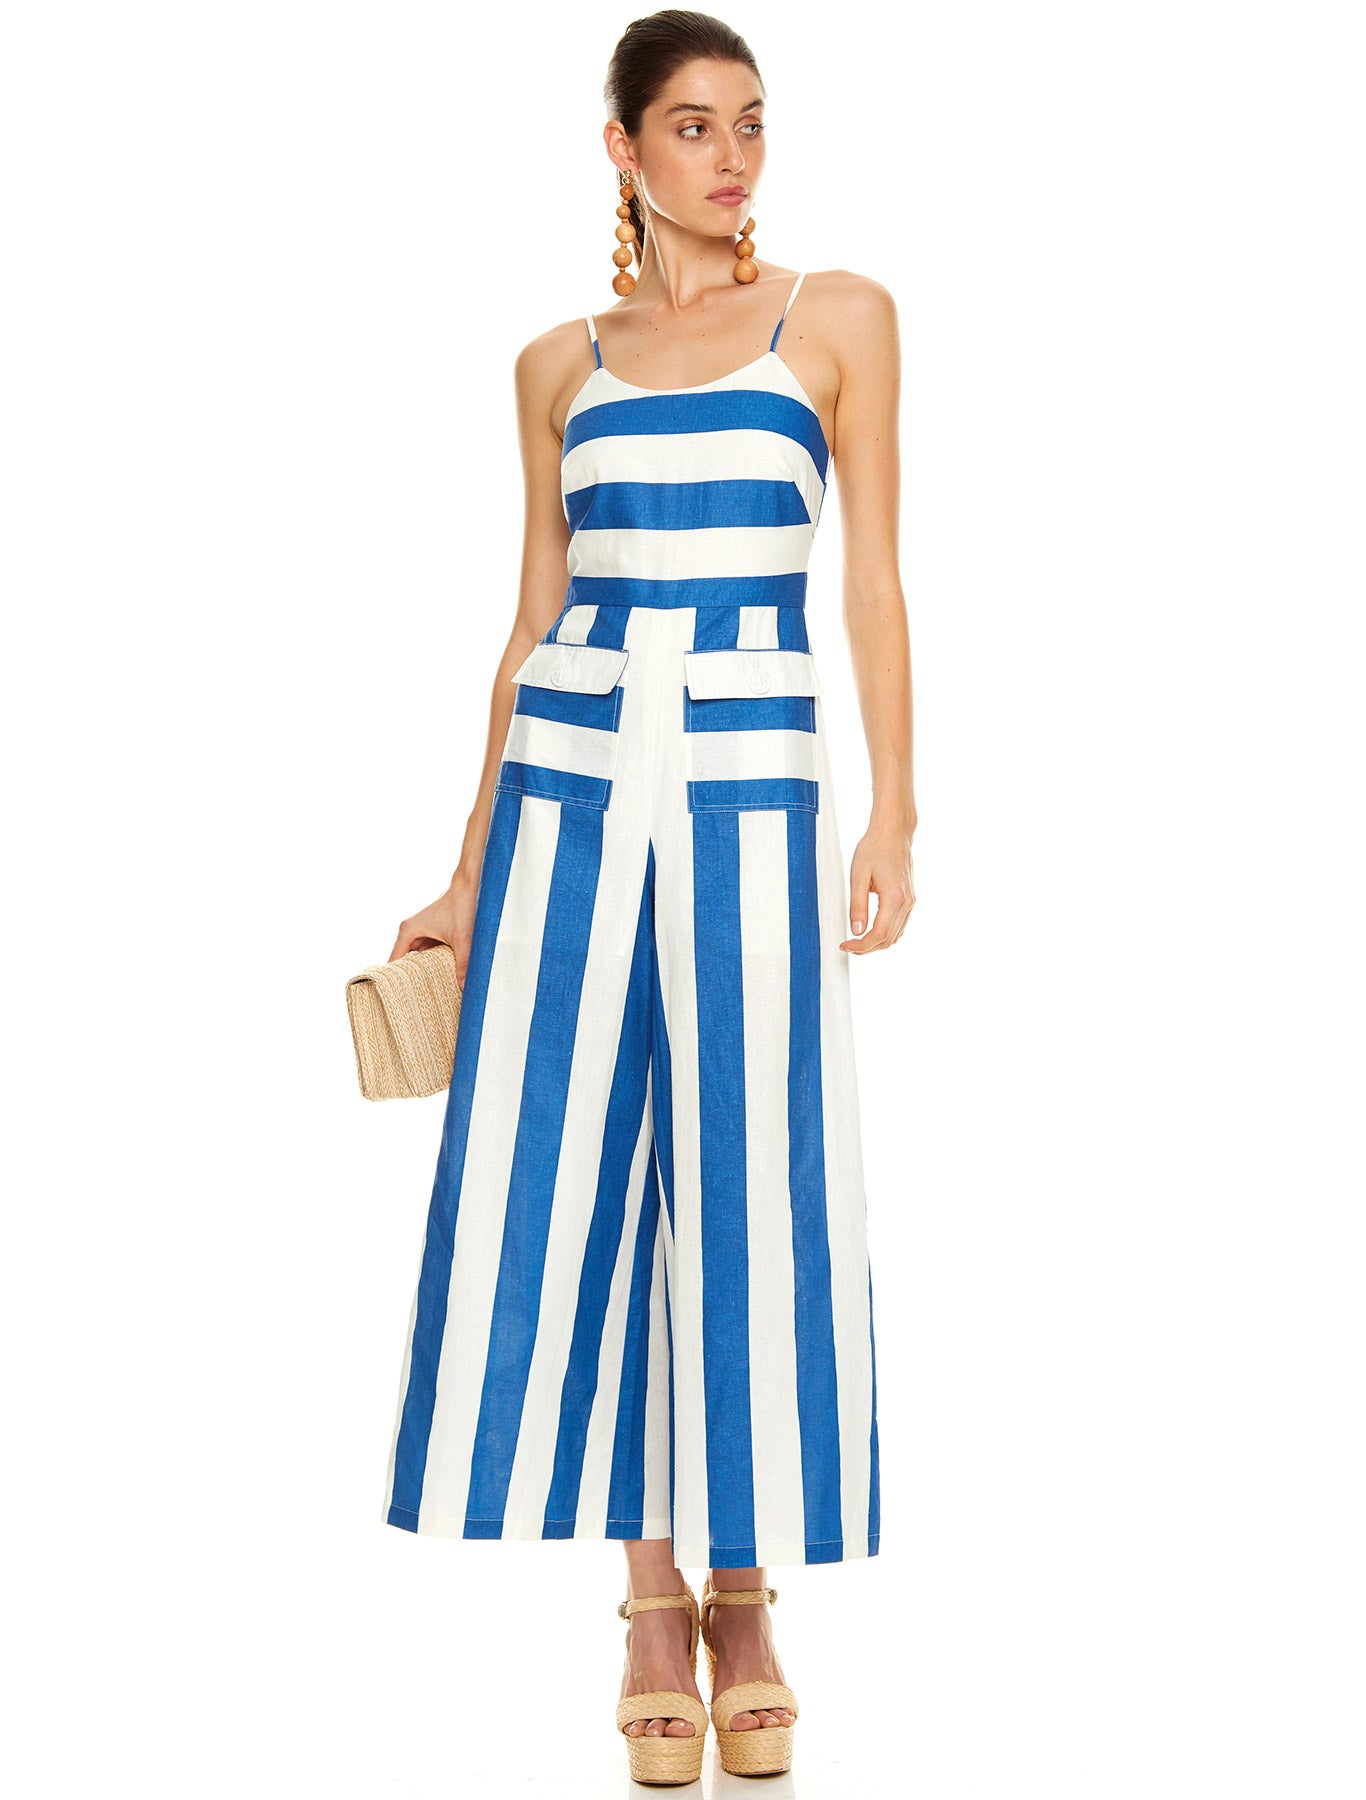 SEA BOUND JUMPSUIT